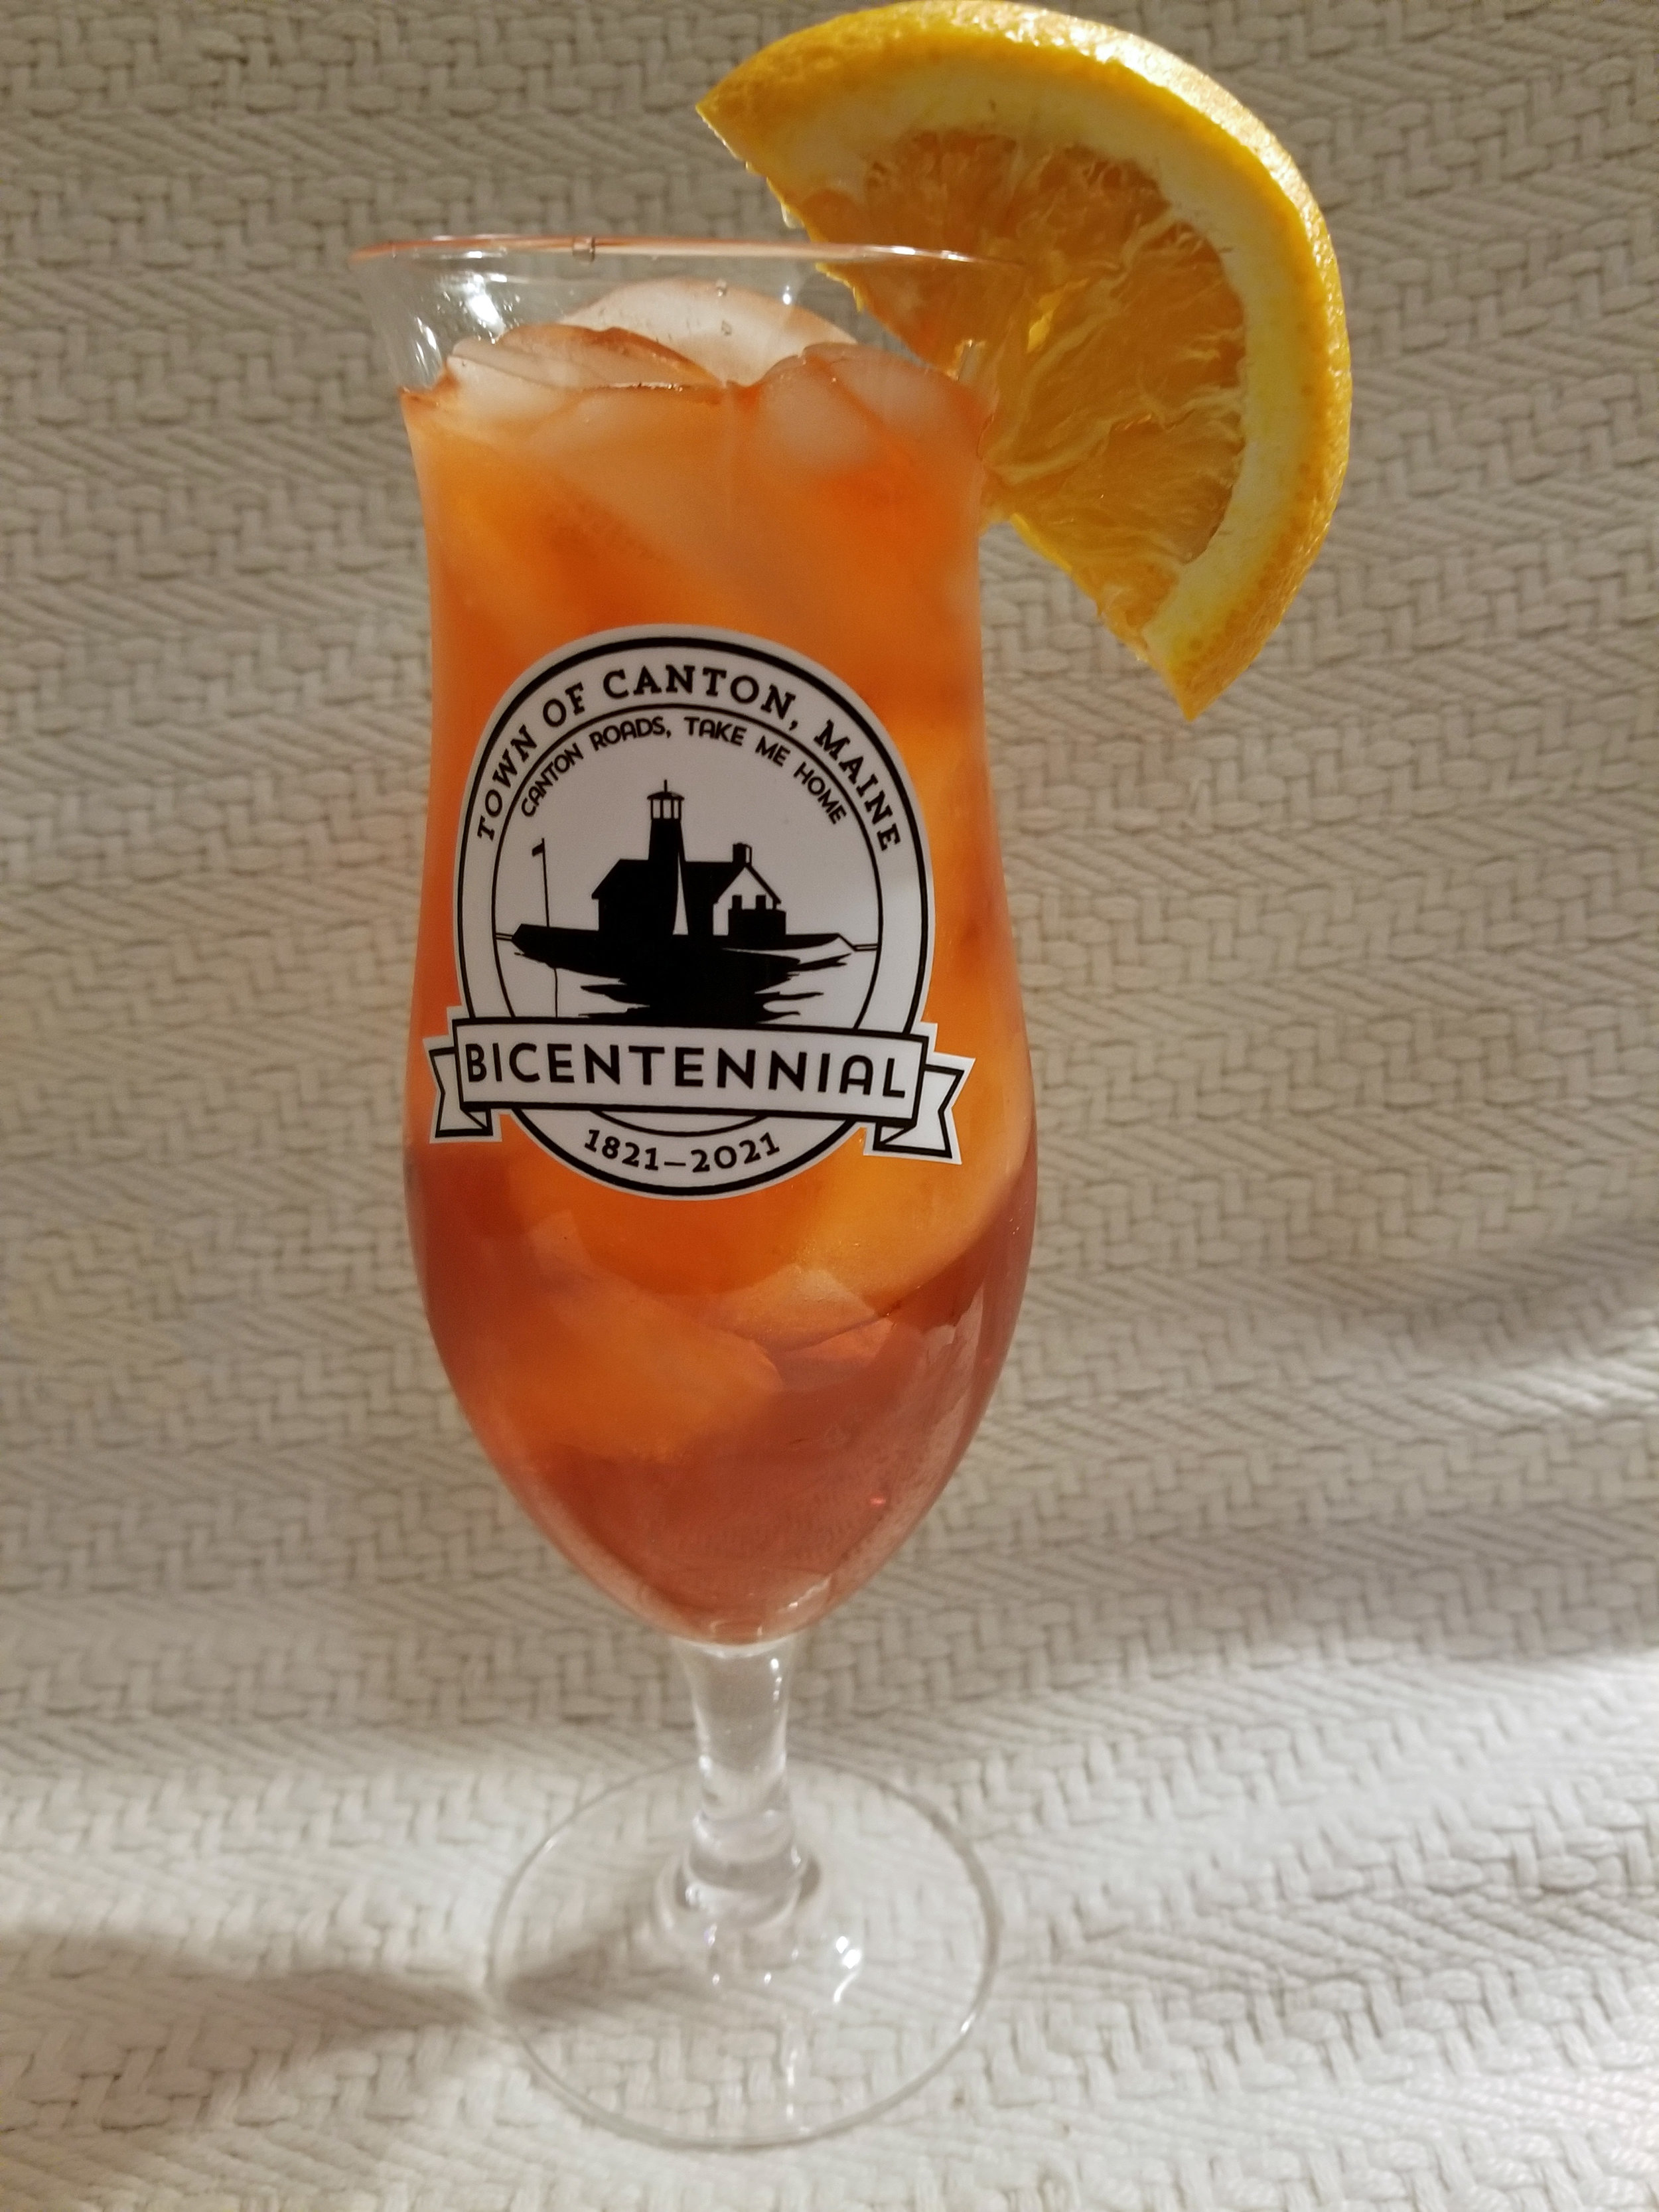 Commemorative Glass $5.00 (beverage not included)